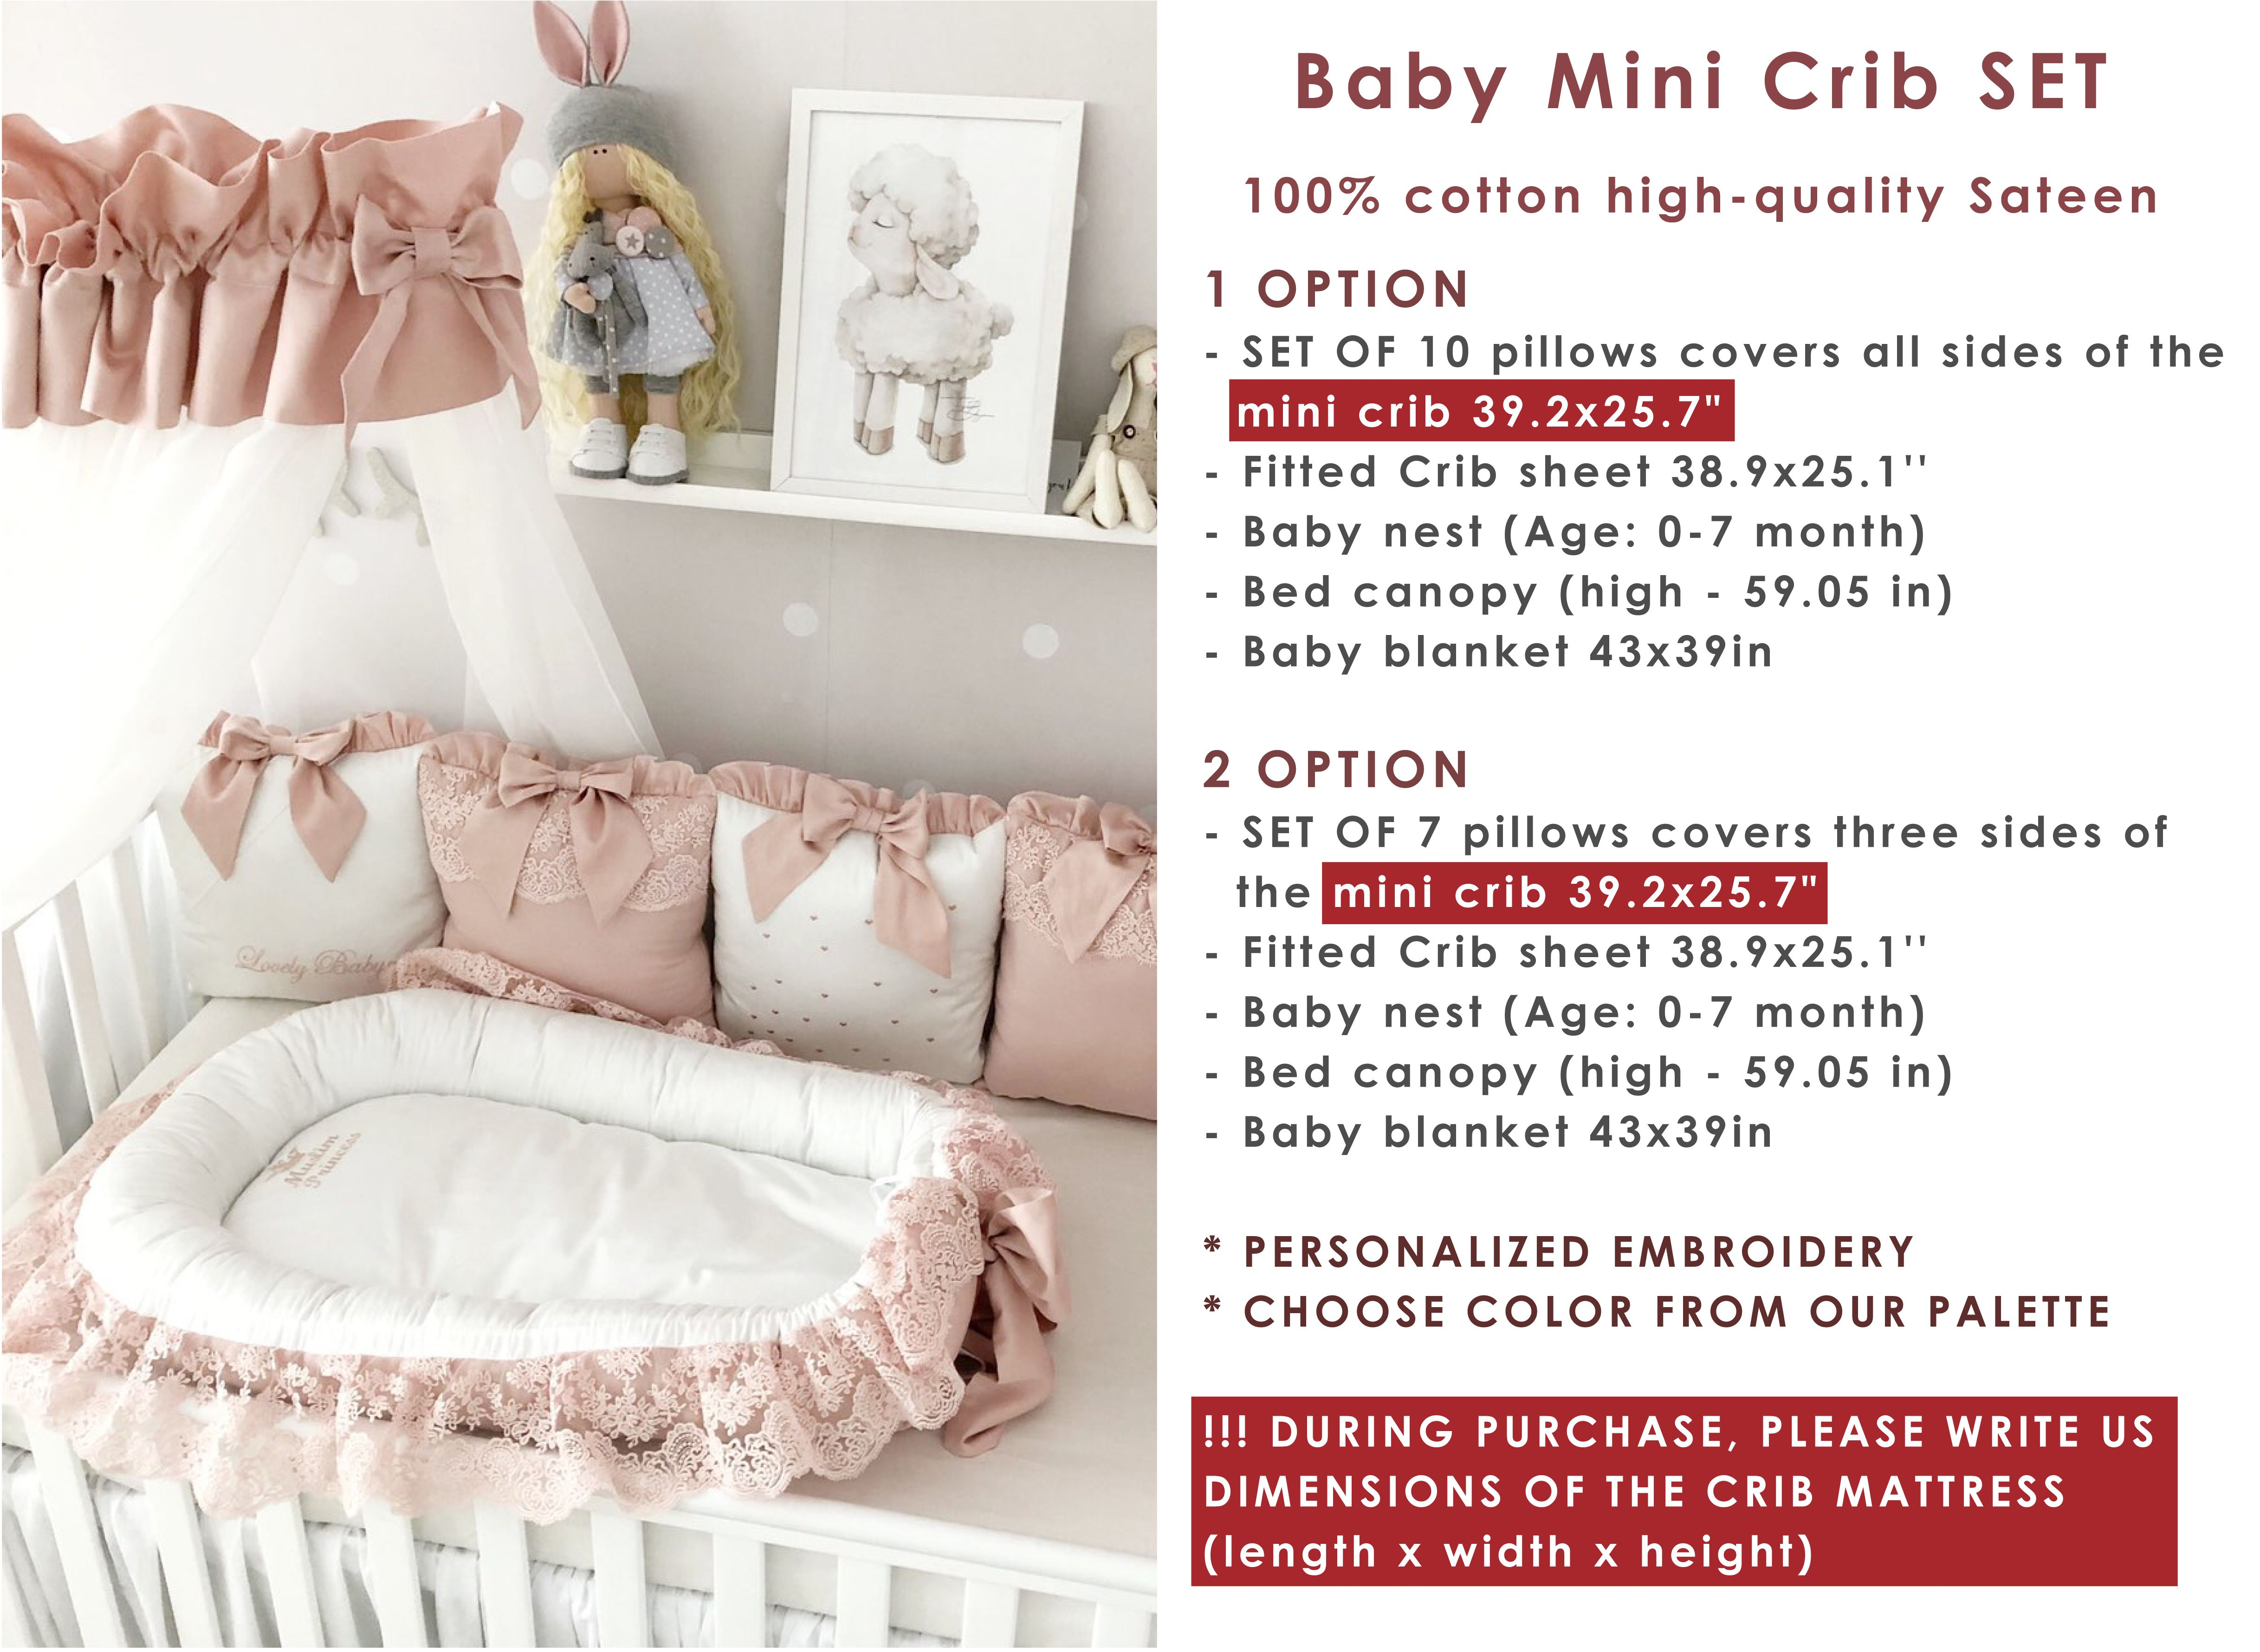 Baby Girl Bedding Crib Set Cot Bedding Set For Girl Personalized Baby Bedding Deluxe Baby Nest Baby Sleeper Bumper Pads Receiving Blanket Mini Crib Bedding Baby Girl Crib Bedding Sets